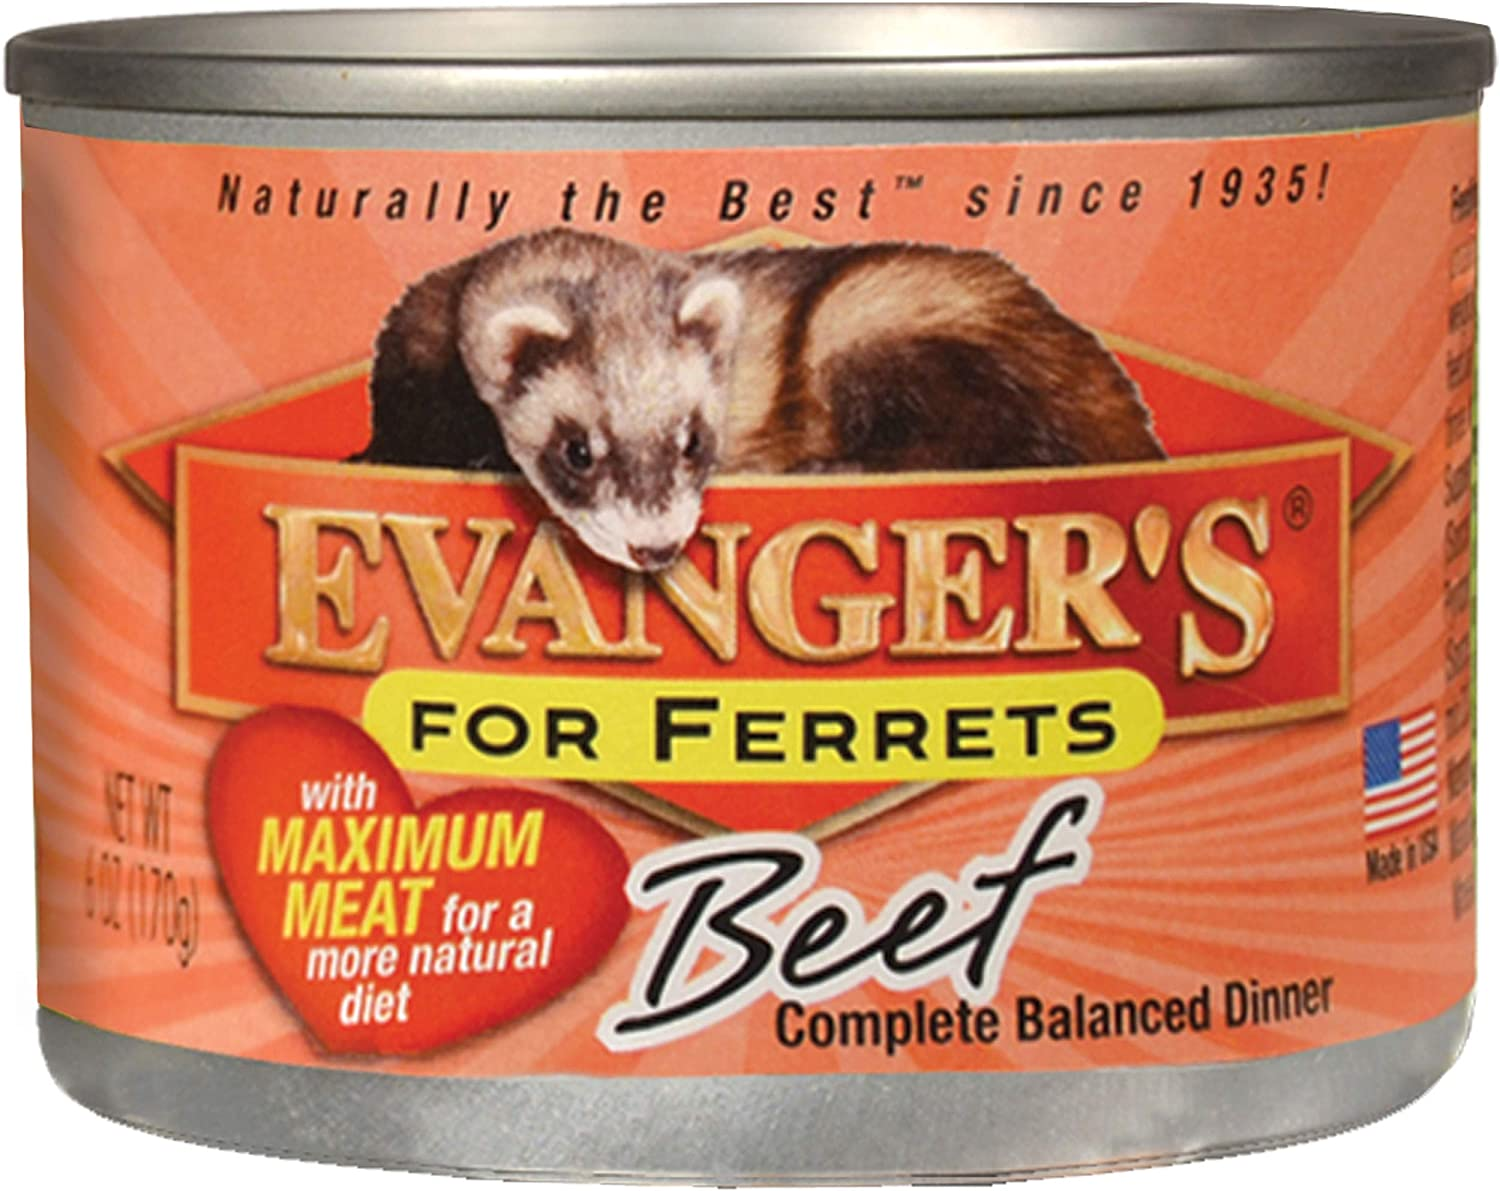 Evanger's Maximum Beef for Ferrets, 12 x 6 oz cans